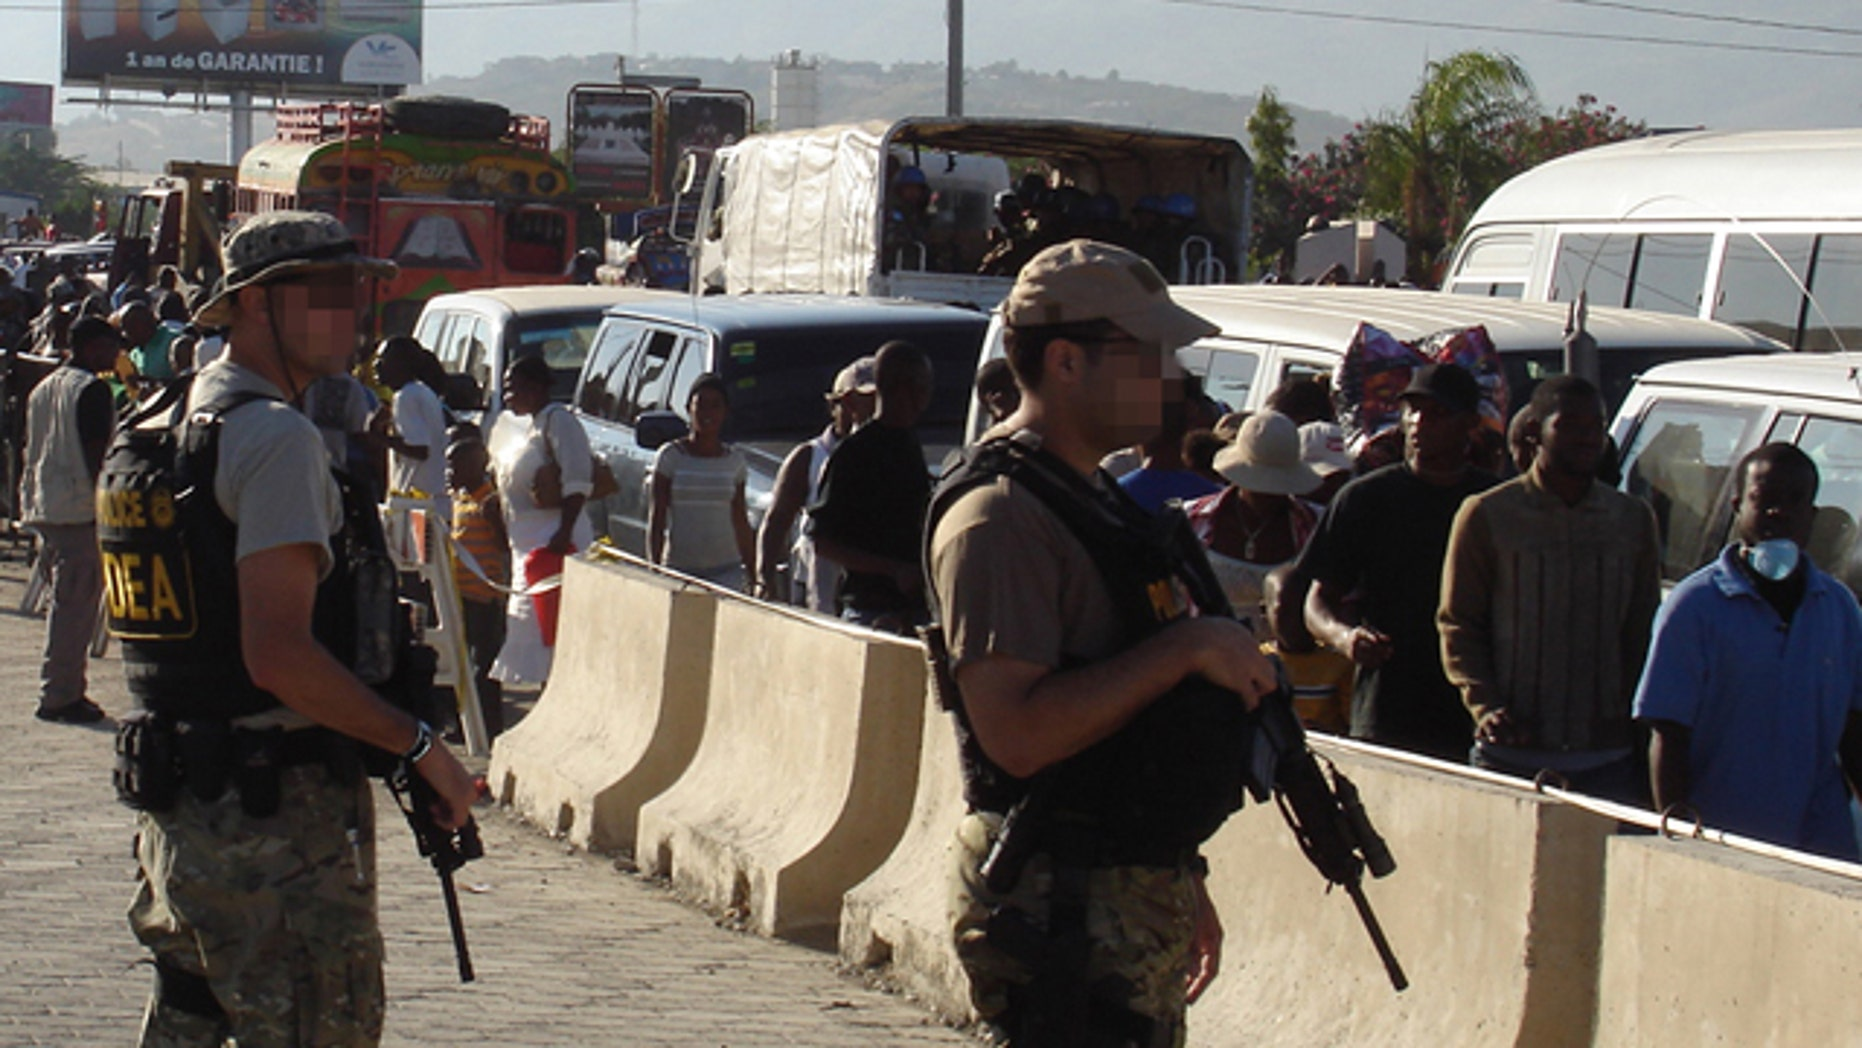 Special agents help protect U.S. Embassy in Port-au-Prince, Haiti.